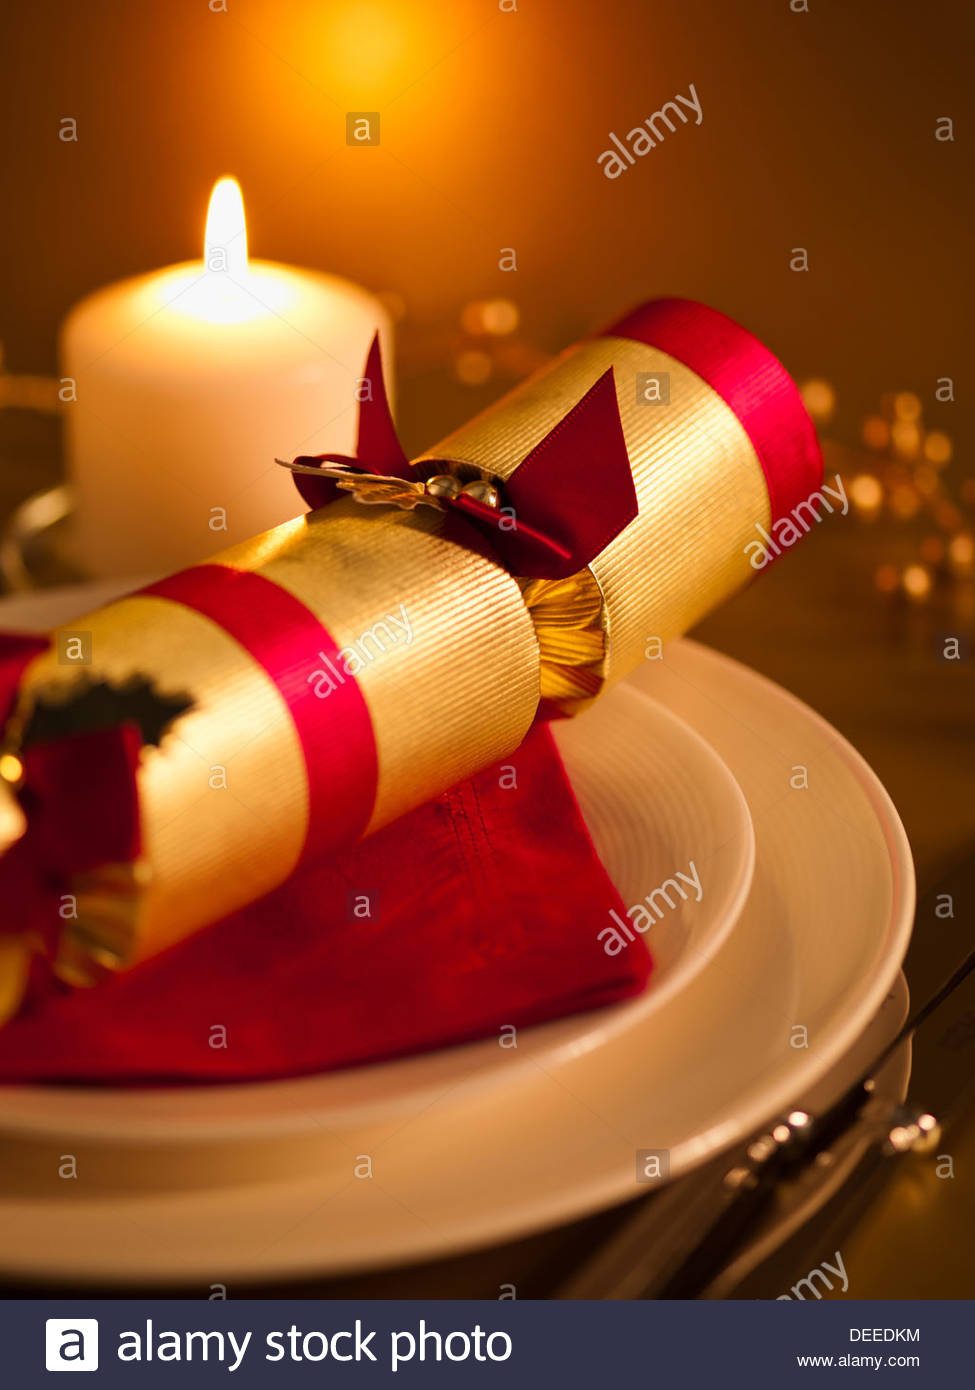 Ornate placesetting and candle - Stock Image